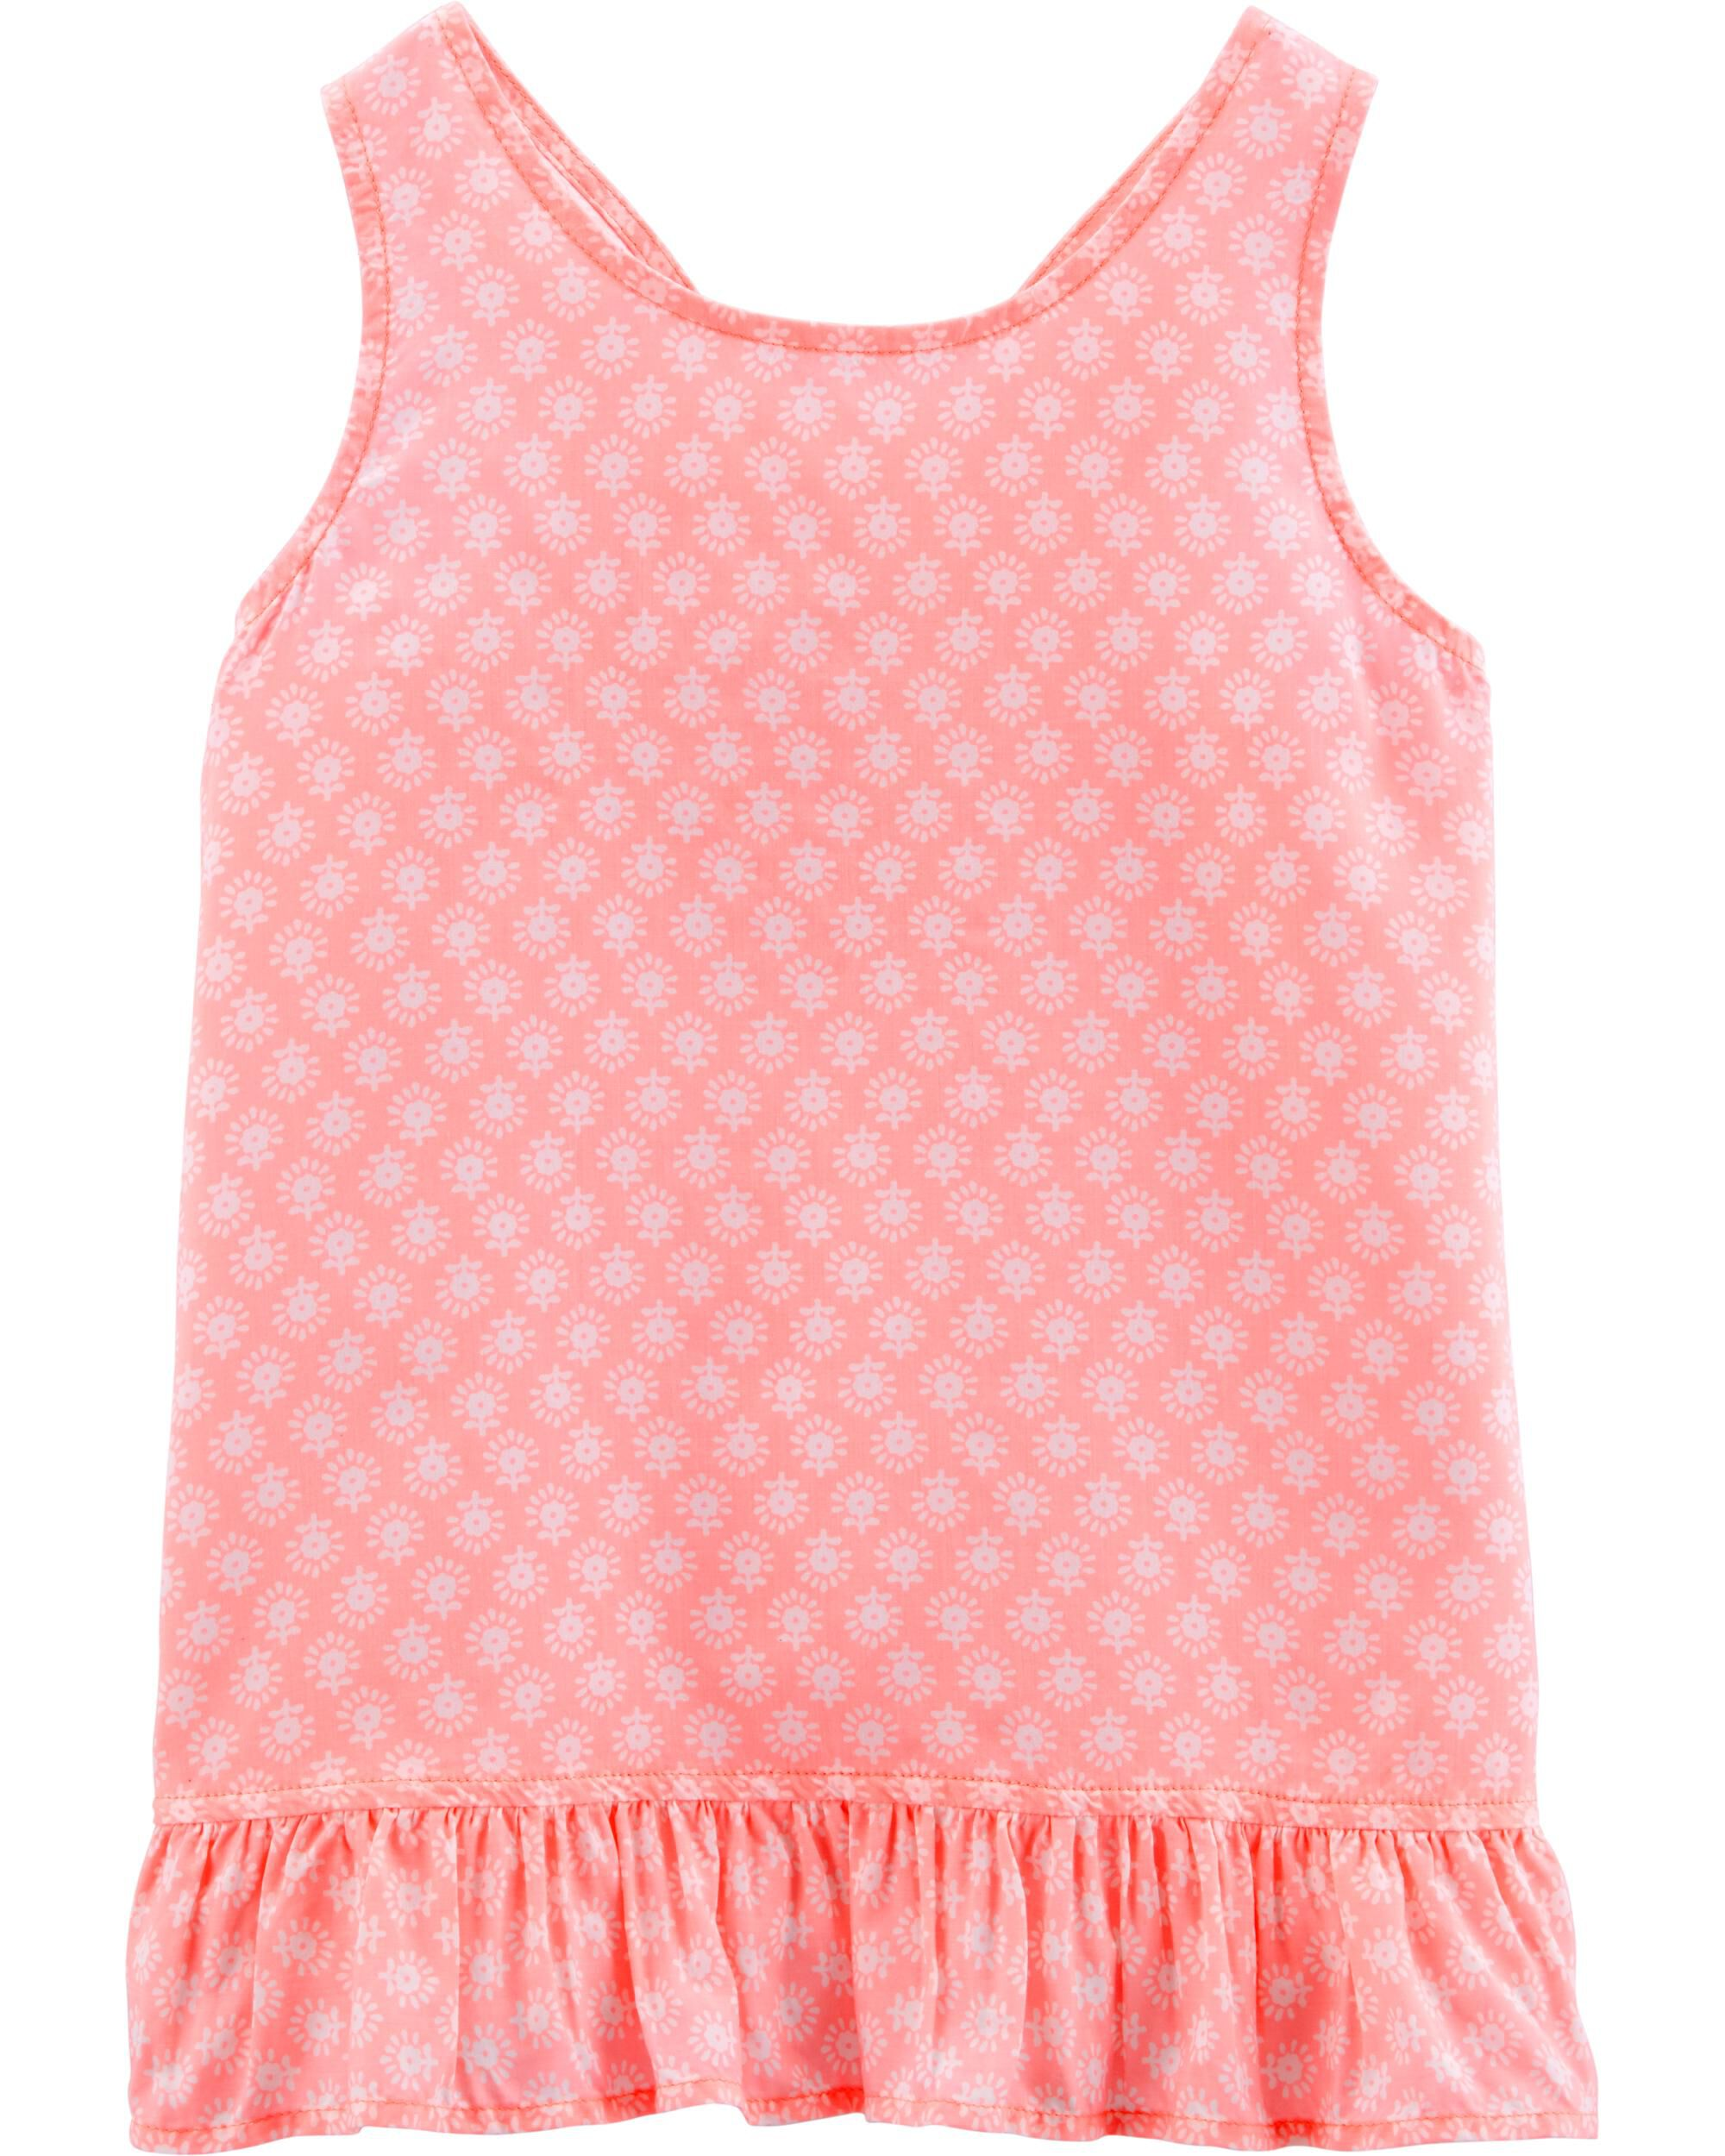 *Clearance*  Neon Floral Criss Cross Tank